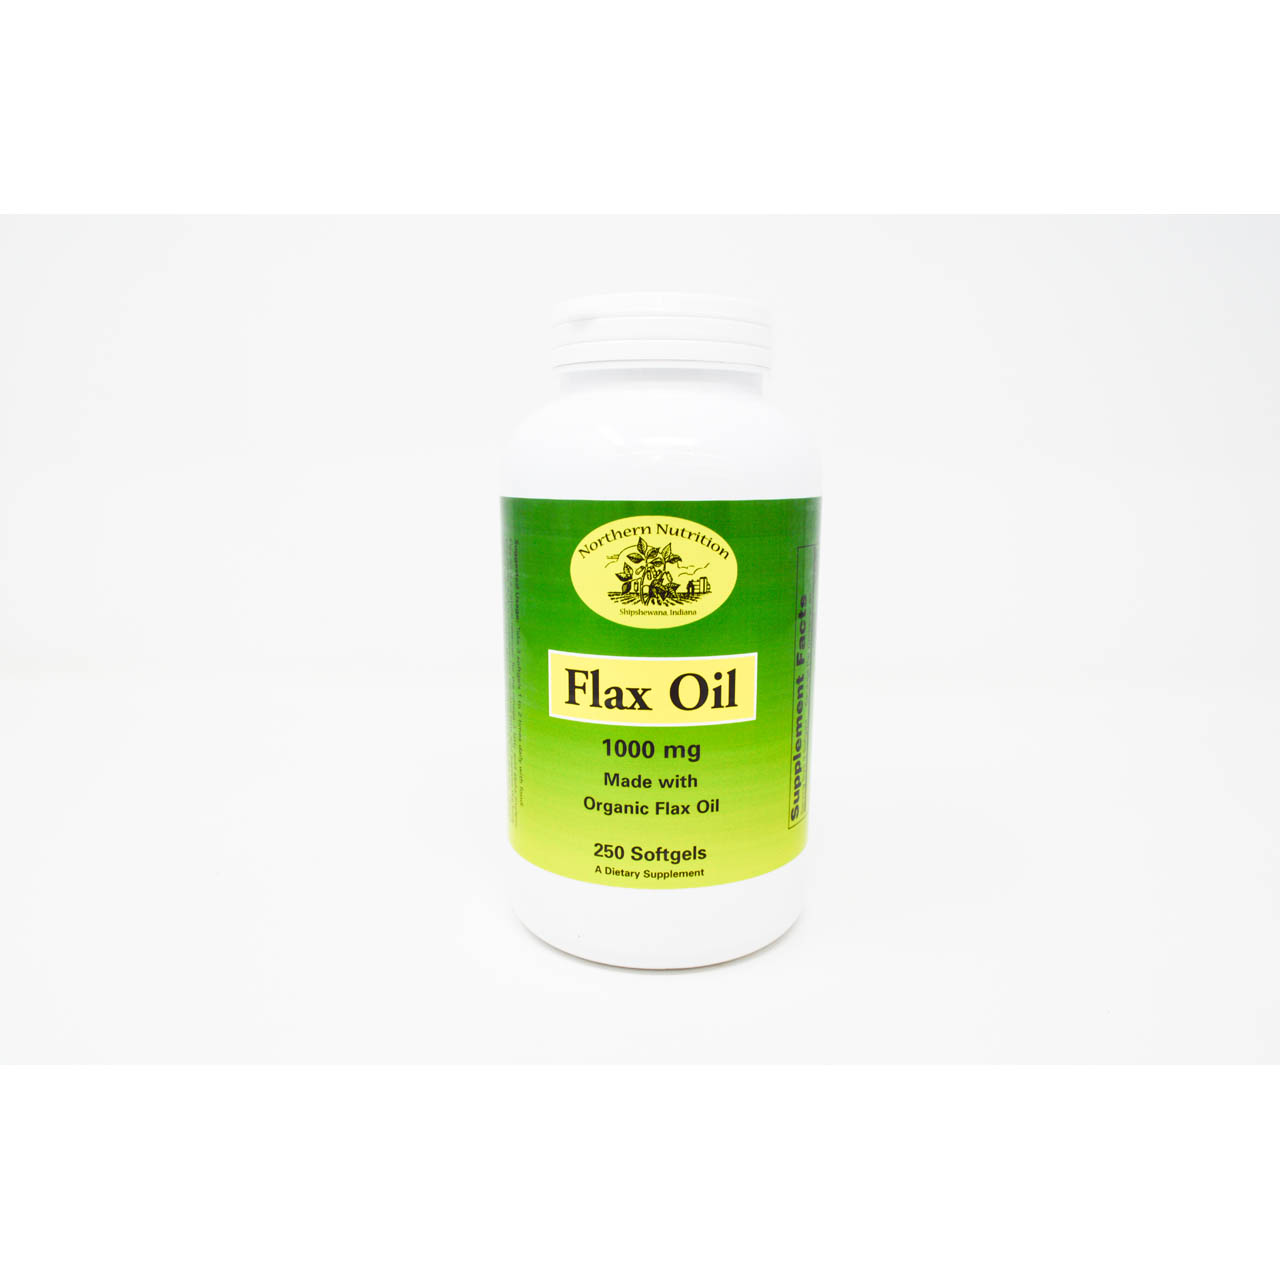 Northern Nutrition Flax Oil